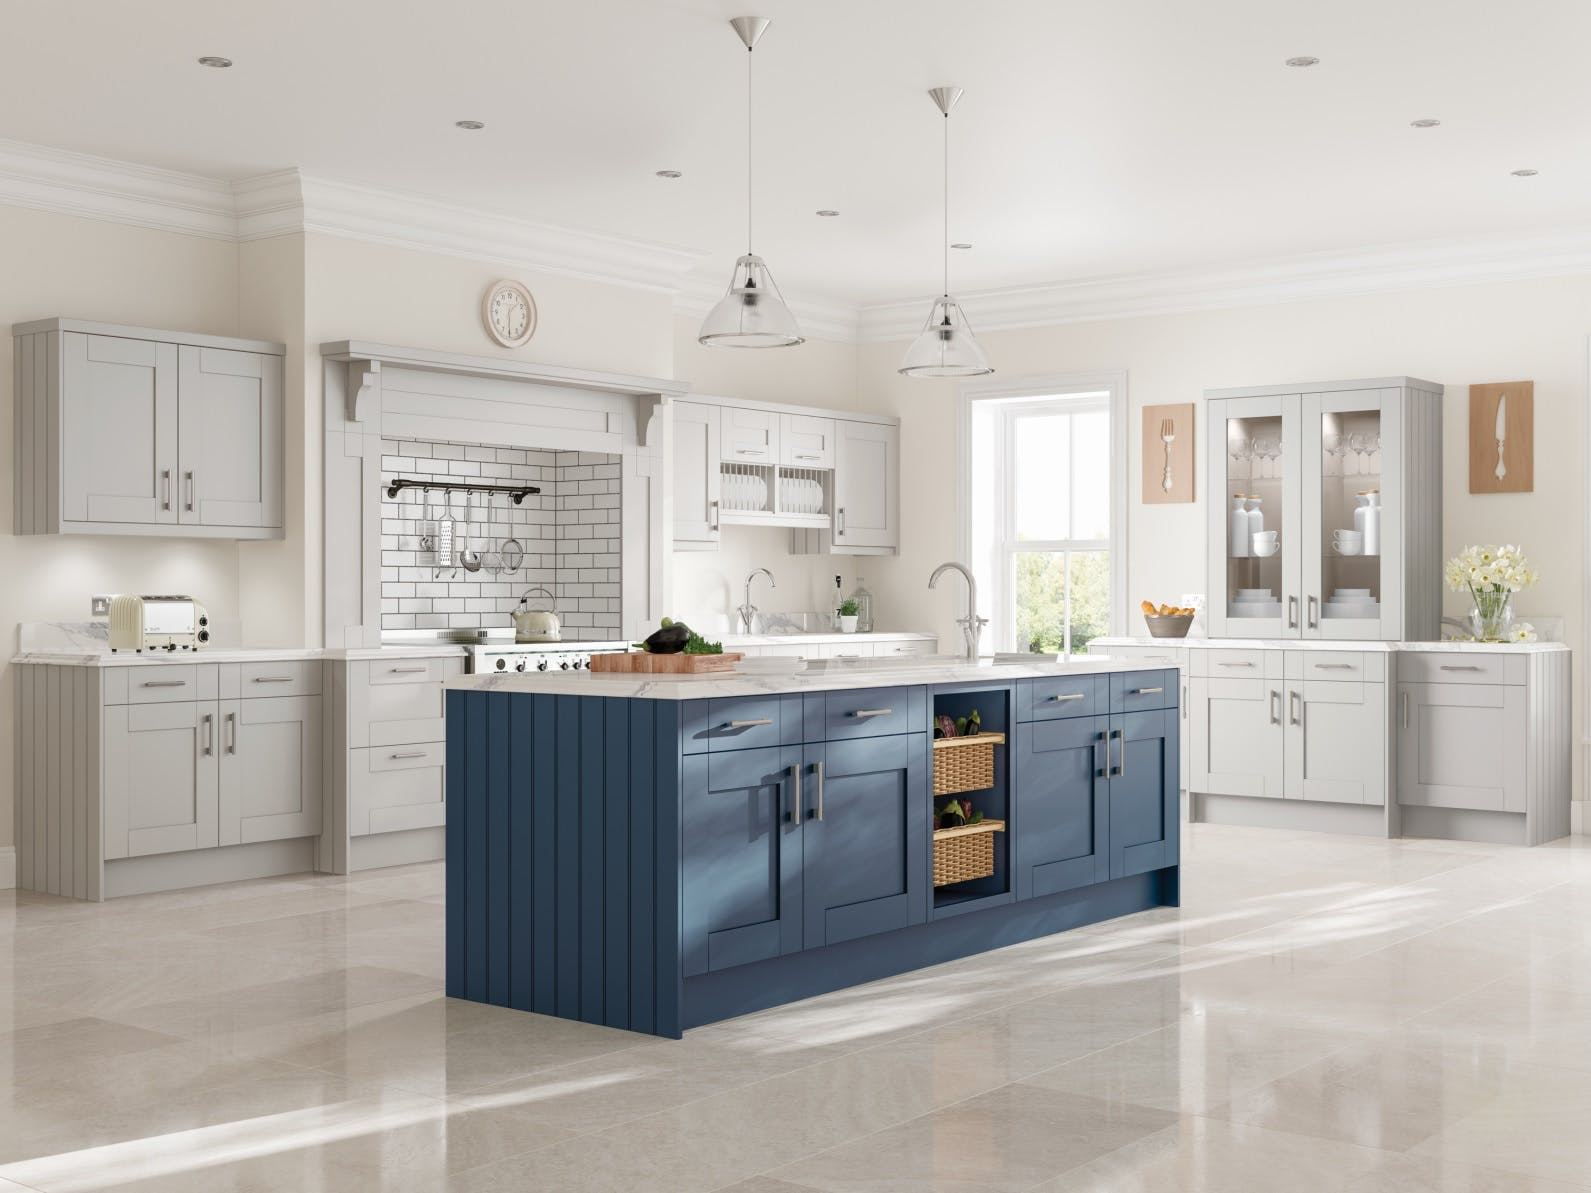 Home Halifax Kitchen And Bedroom Company